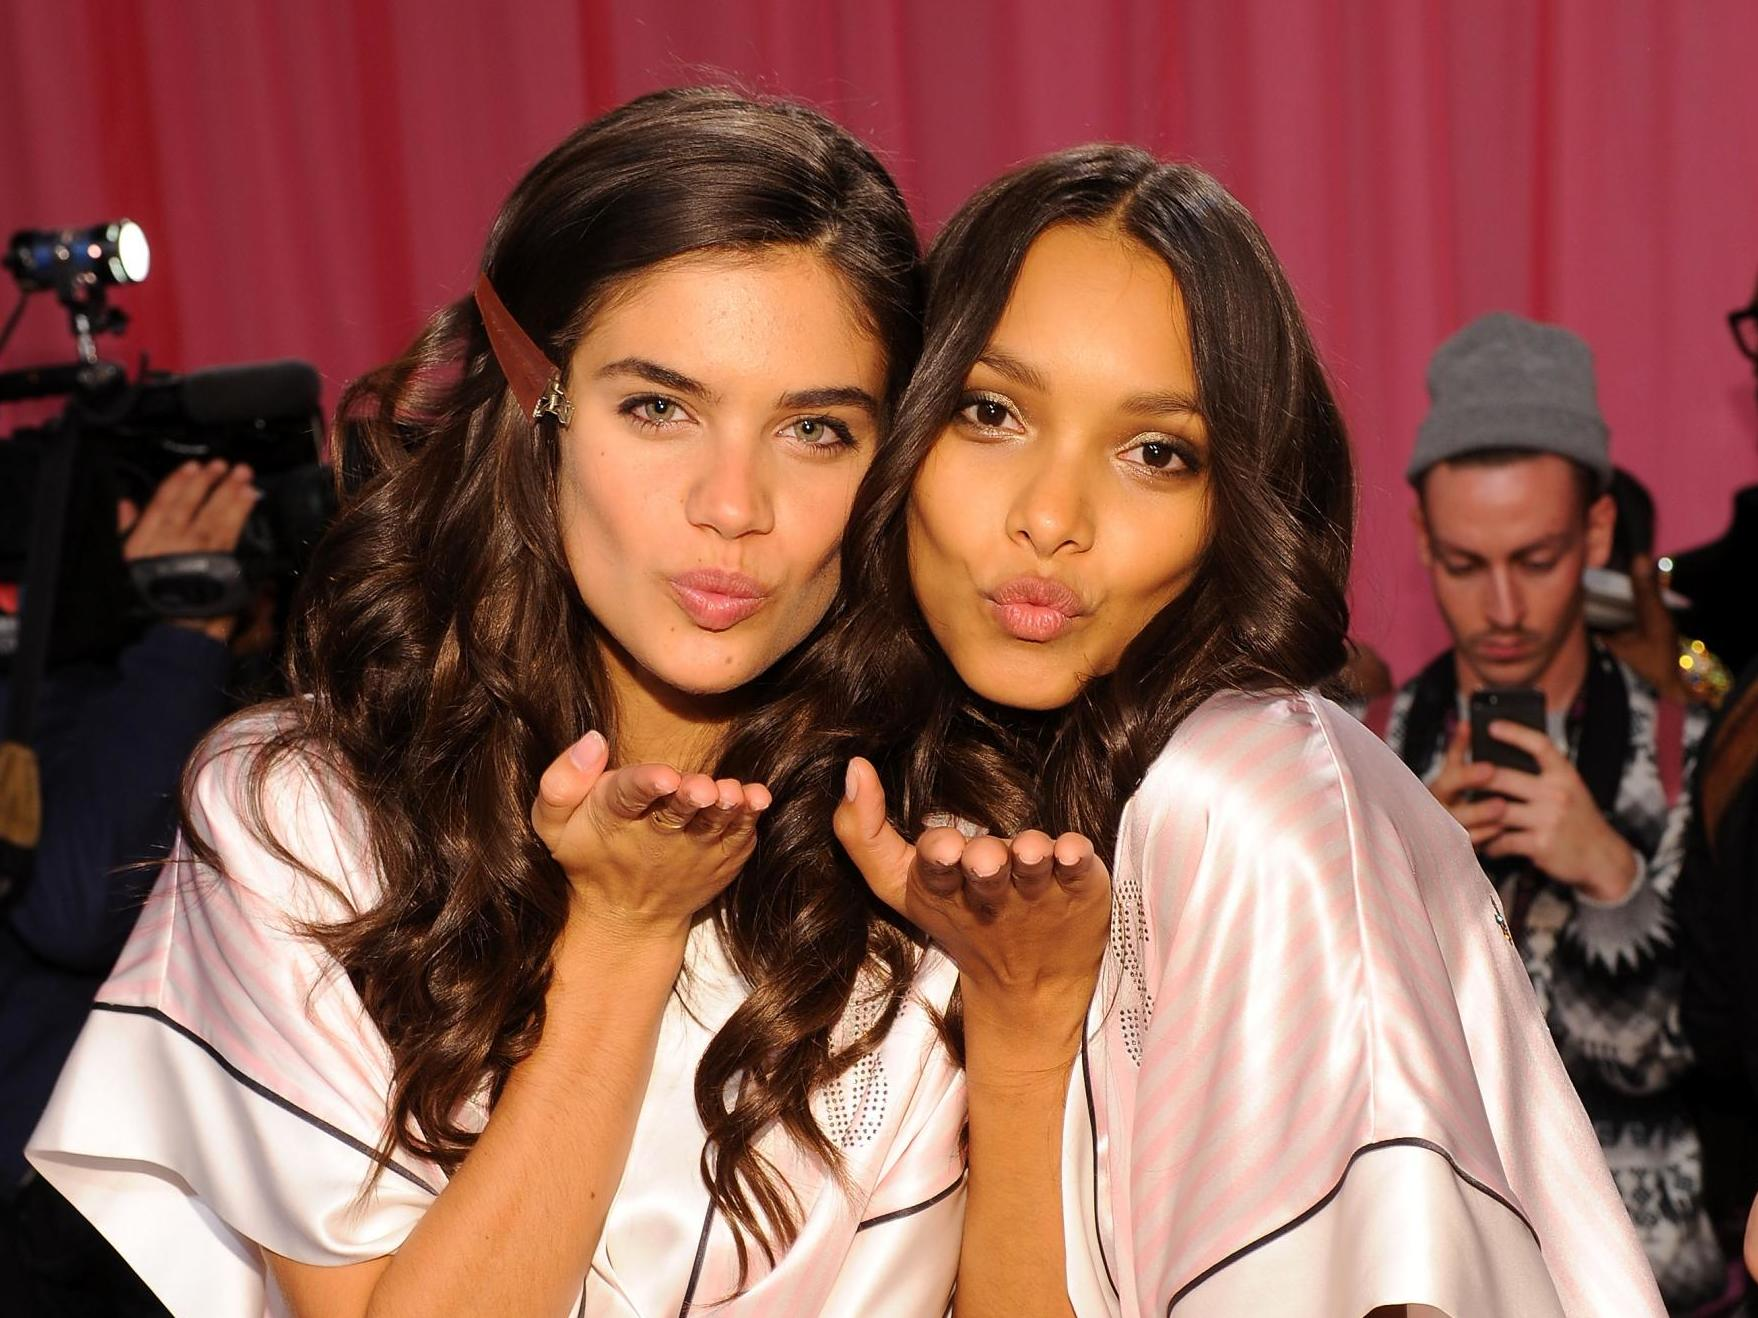 Victoria's Secret models defend company after sexual misconduct petition